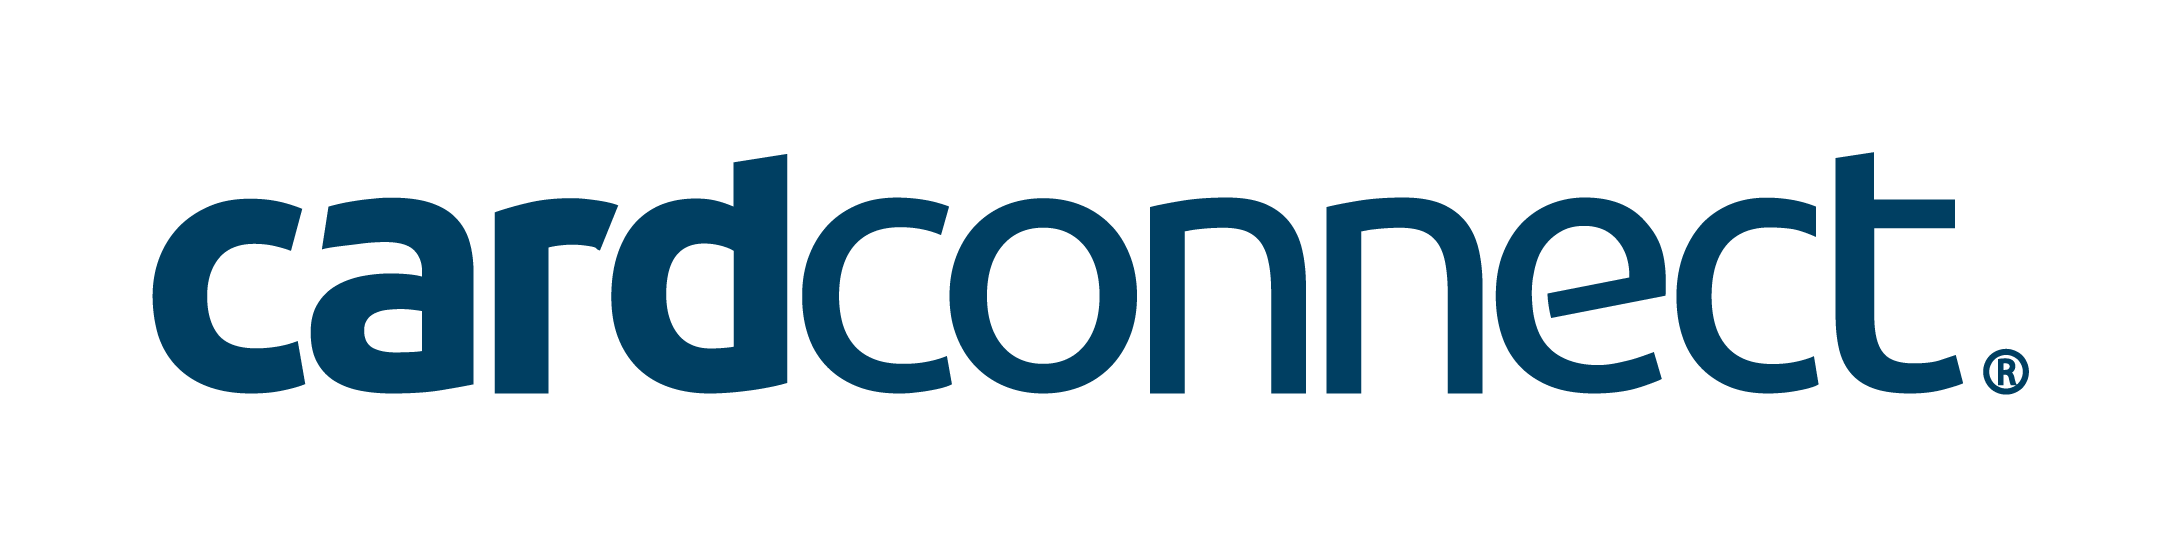 CardConnect Unveils Latest in Payments Technology at Product Show in Philadelphia